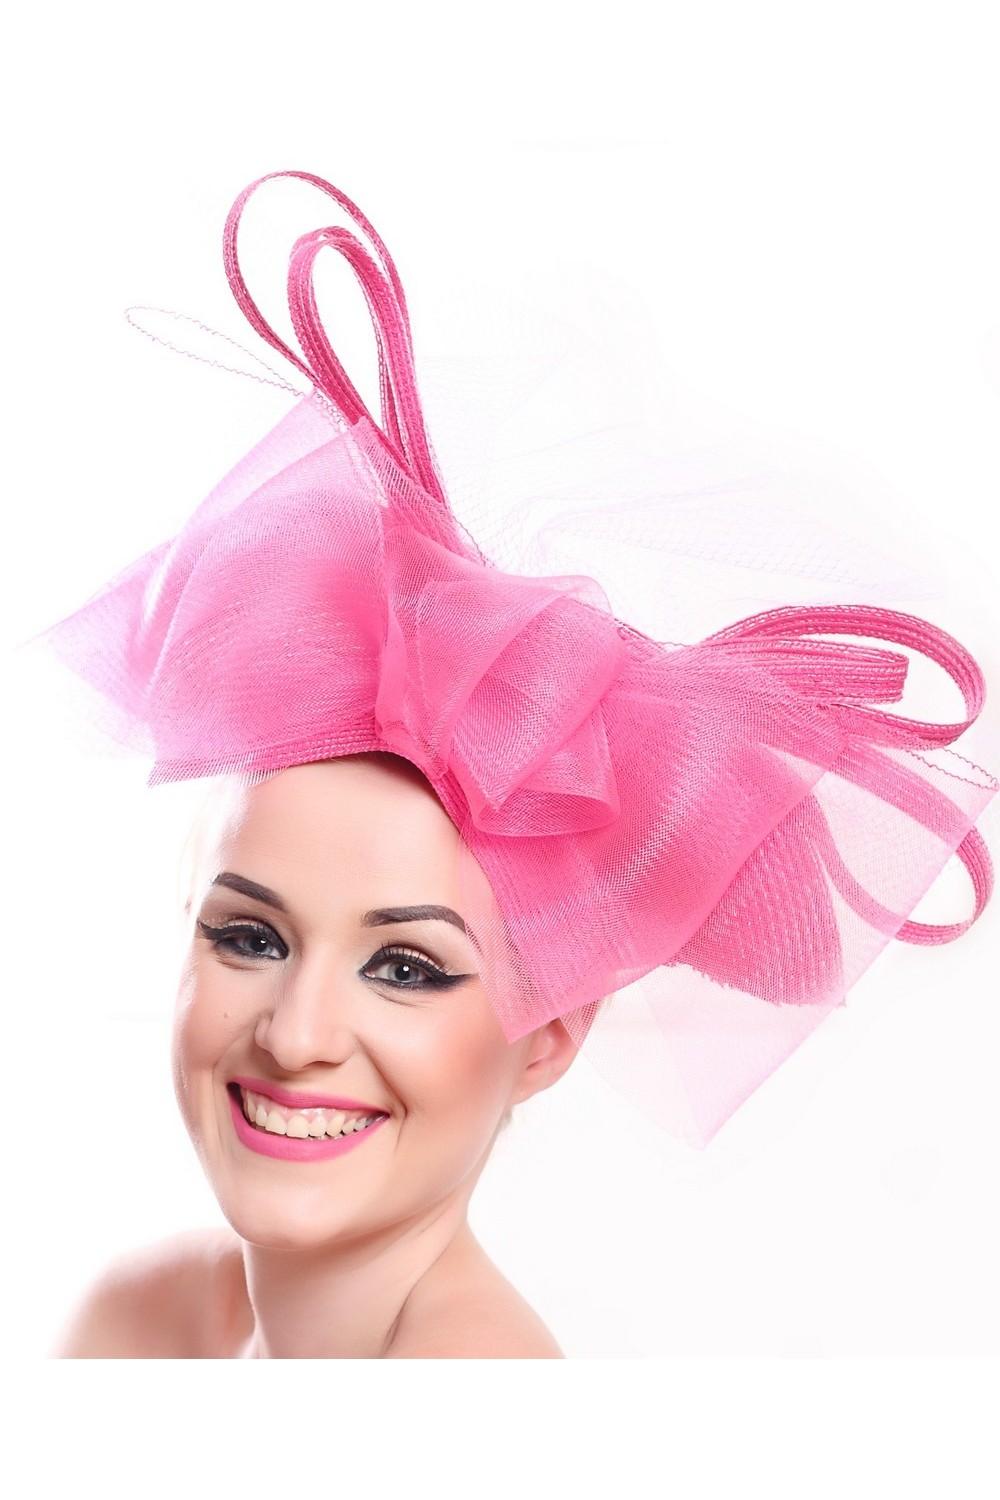 Buy Pink summer women's designer mesh hat, Exclusive unique stylish hat for the holiday